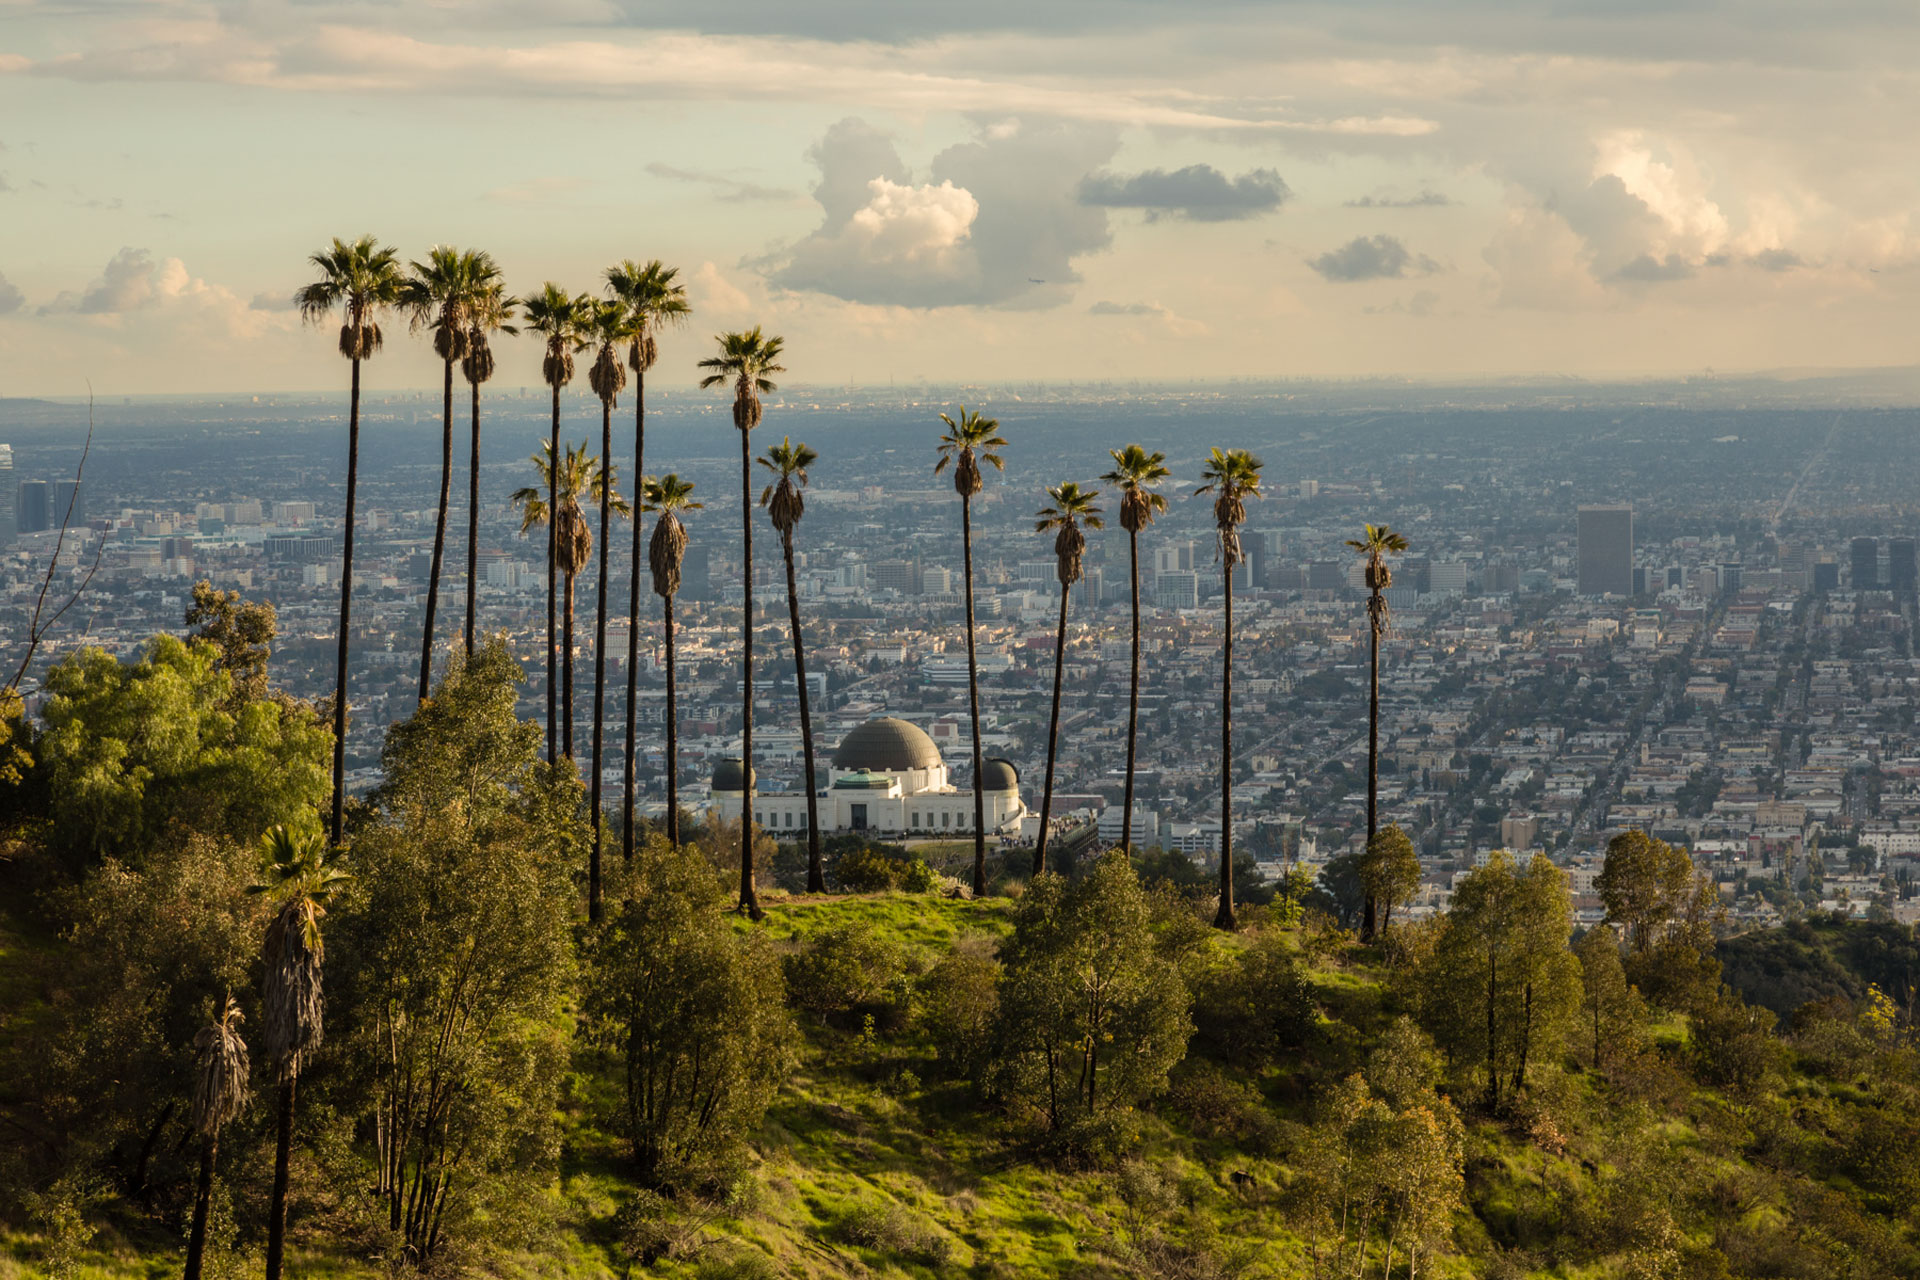 Griffith Observatory surrounded by skinny palm trees